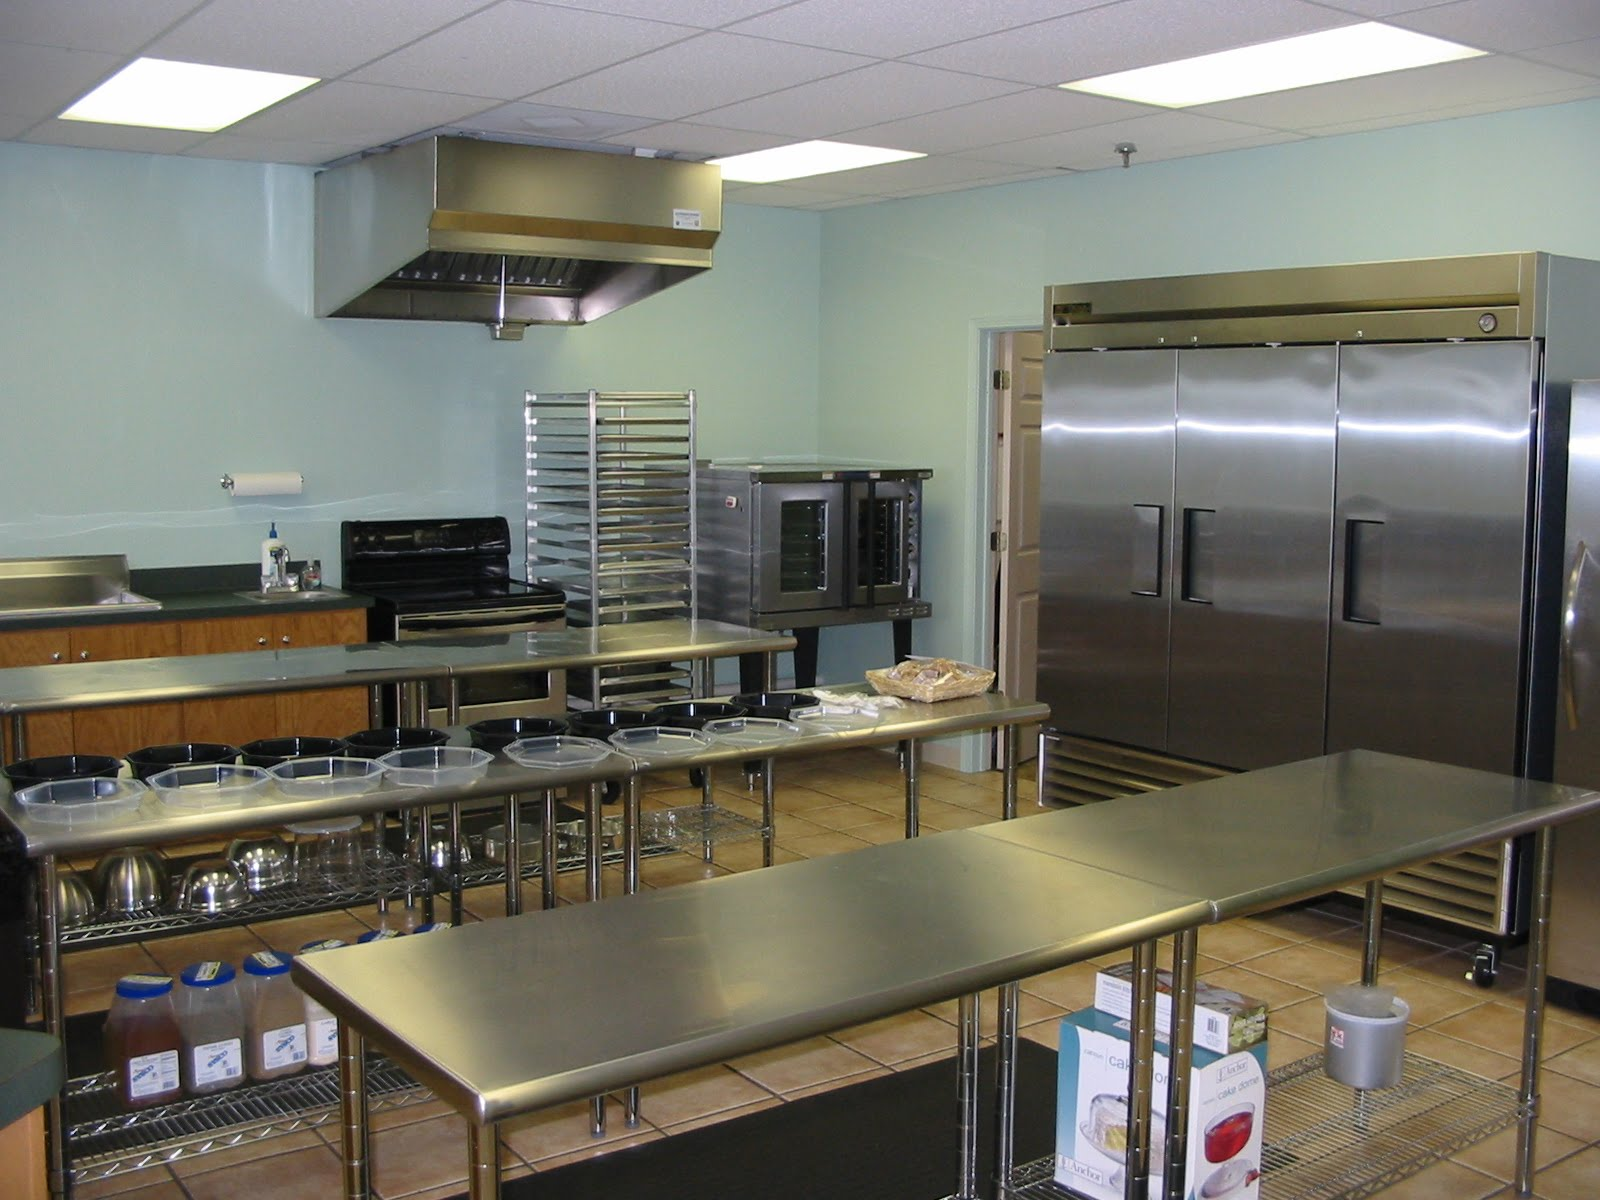 Small commercial kitchen afreakatheart - Commercial kitchen designer ...